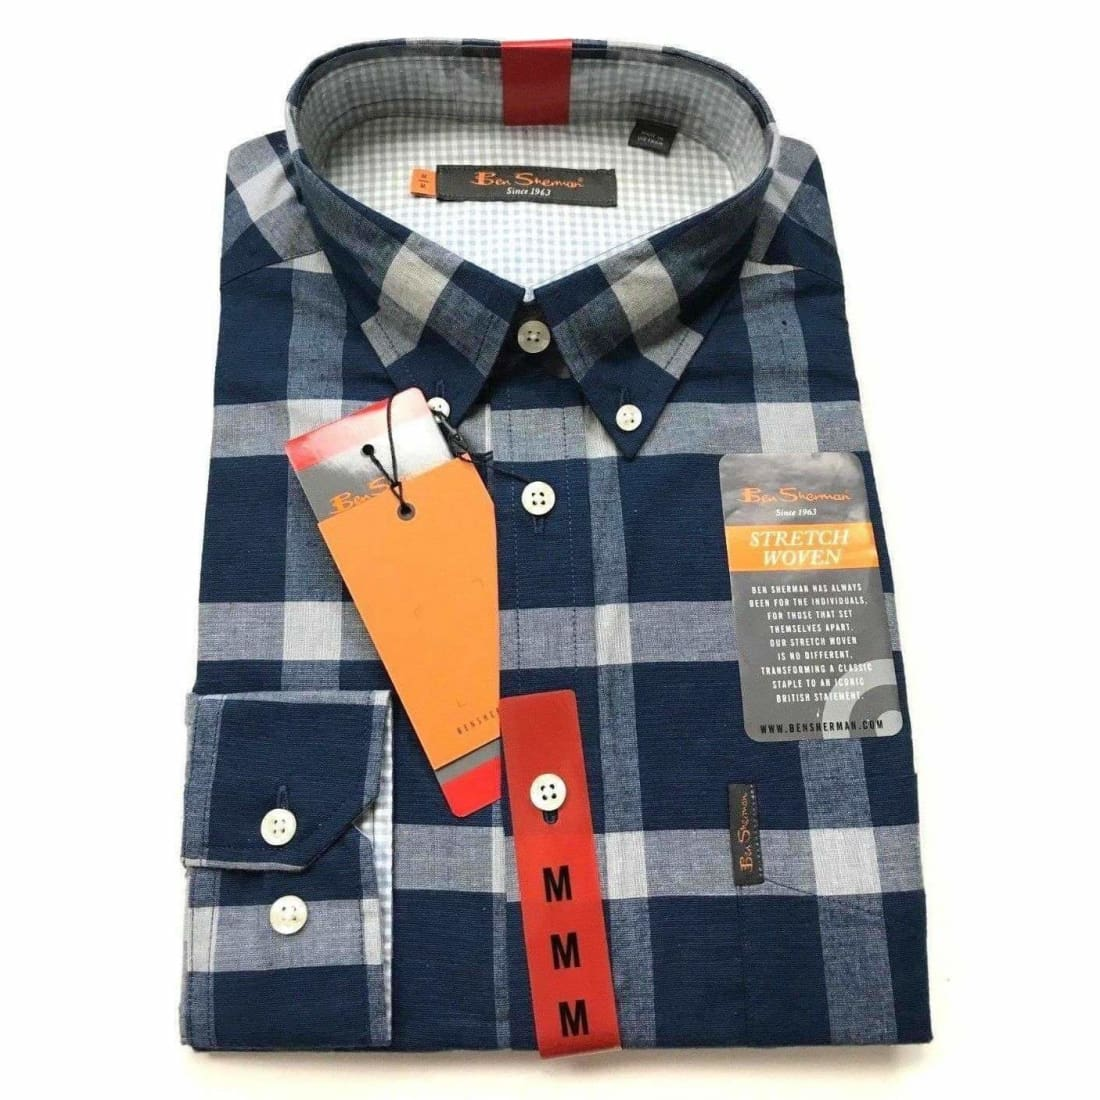 Ben Sherman Mens Long Sleeve Stretch Woven Plaid Shirt L / Blue Casual Shirts